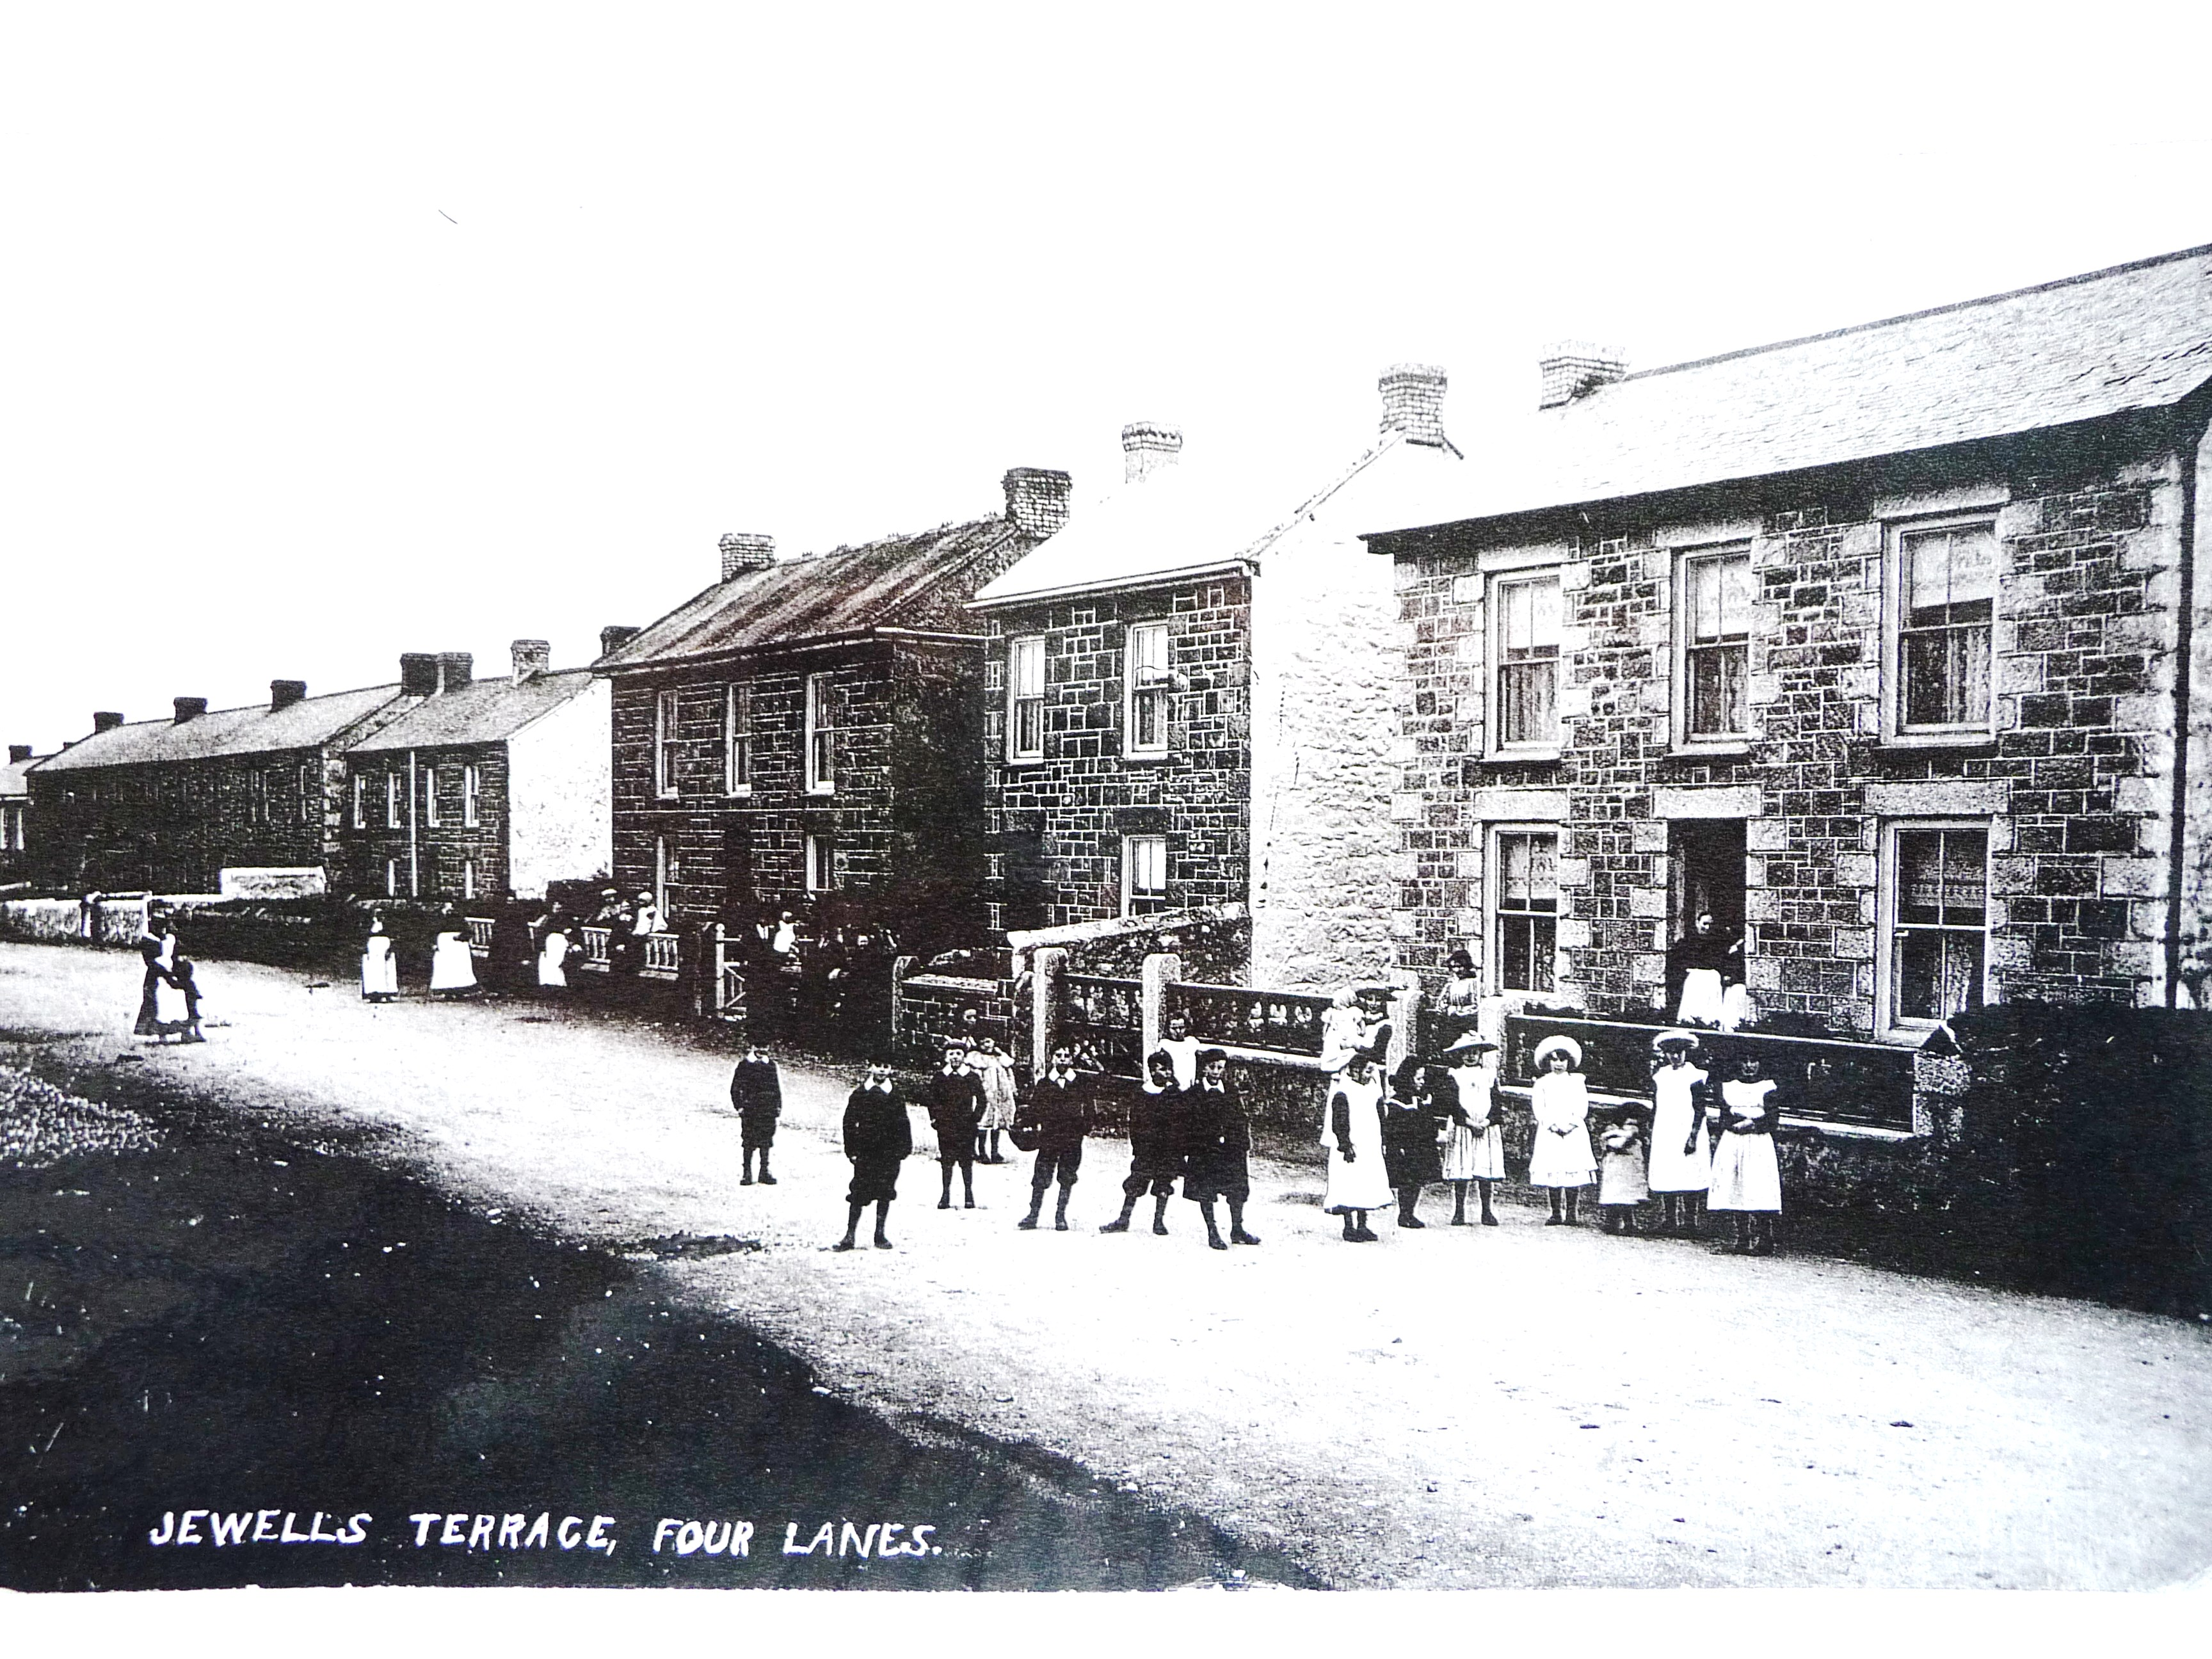 four lanes jewells terrace